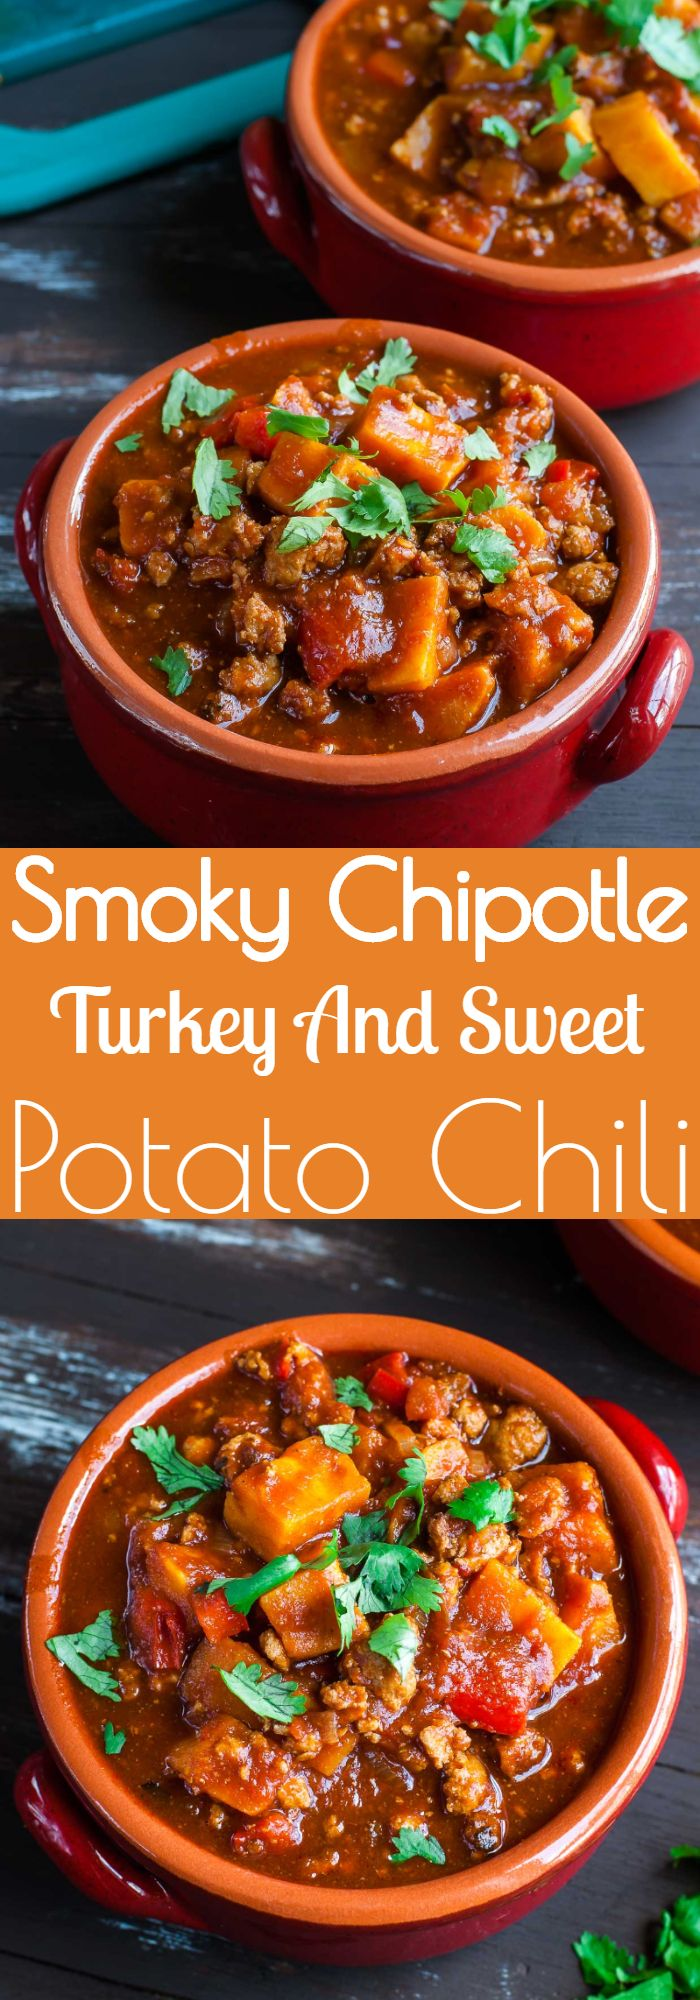 Smoky Chipotle Turkey And Sweet Potato